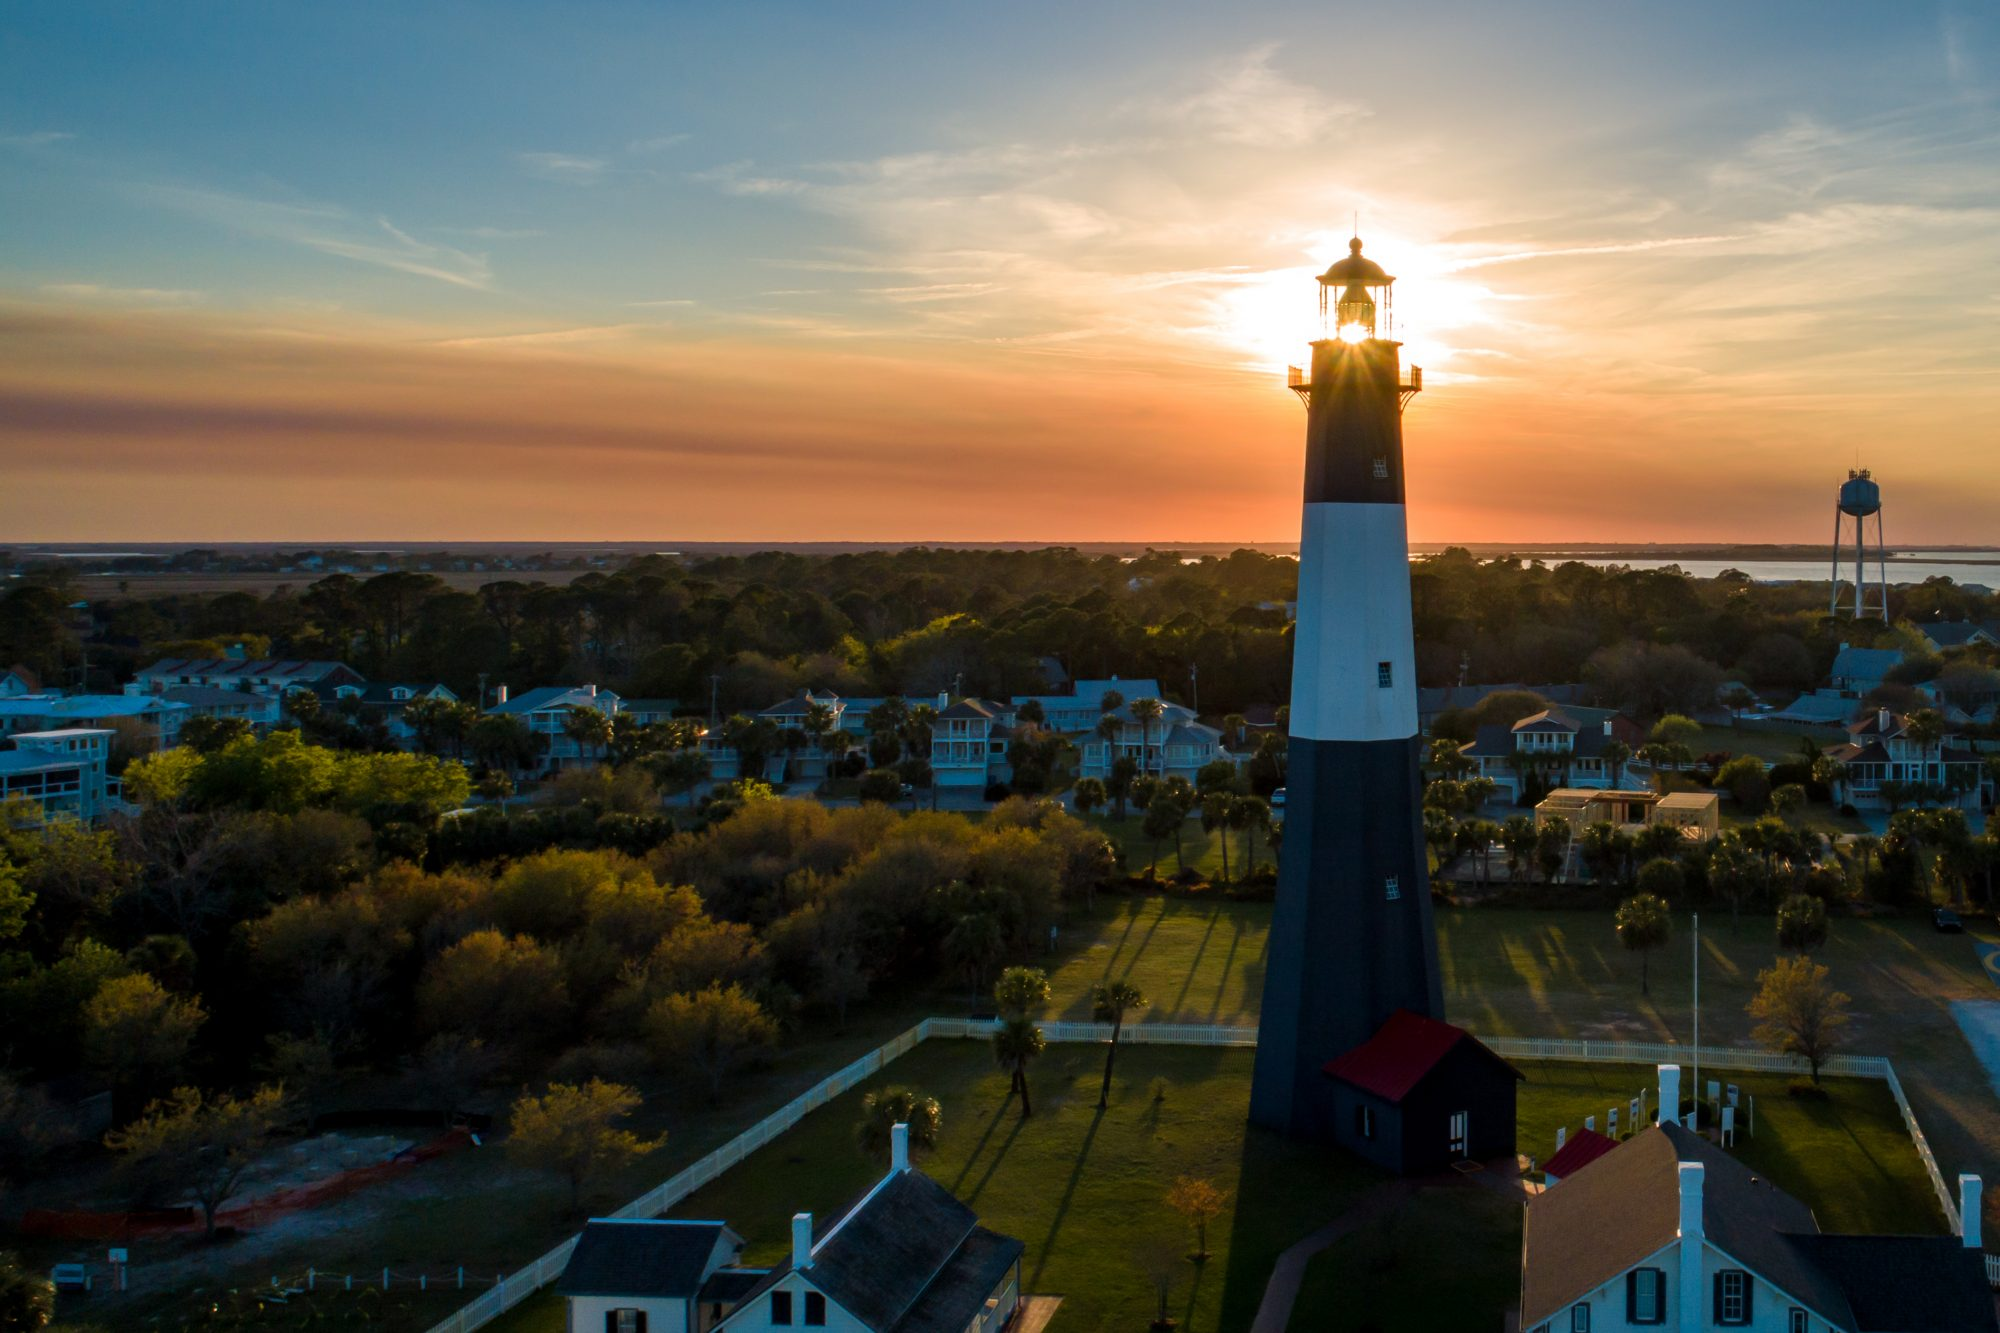 Named one of the Best Places To Live on the Coast in 2019, this barrier island beach town is a stone's throw from the myriad refinements of Savannah, offering the perfect complement: colorful and tiny cottages, seafood shacks, and miles of wide Atlantic-facing beaches.